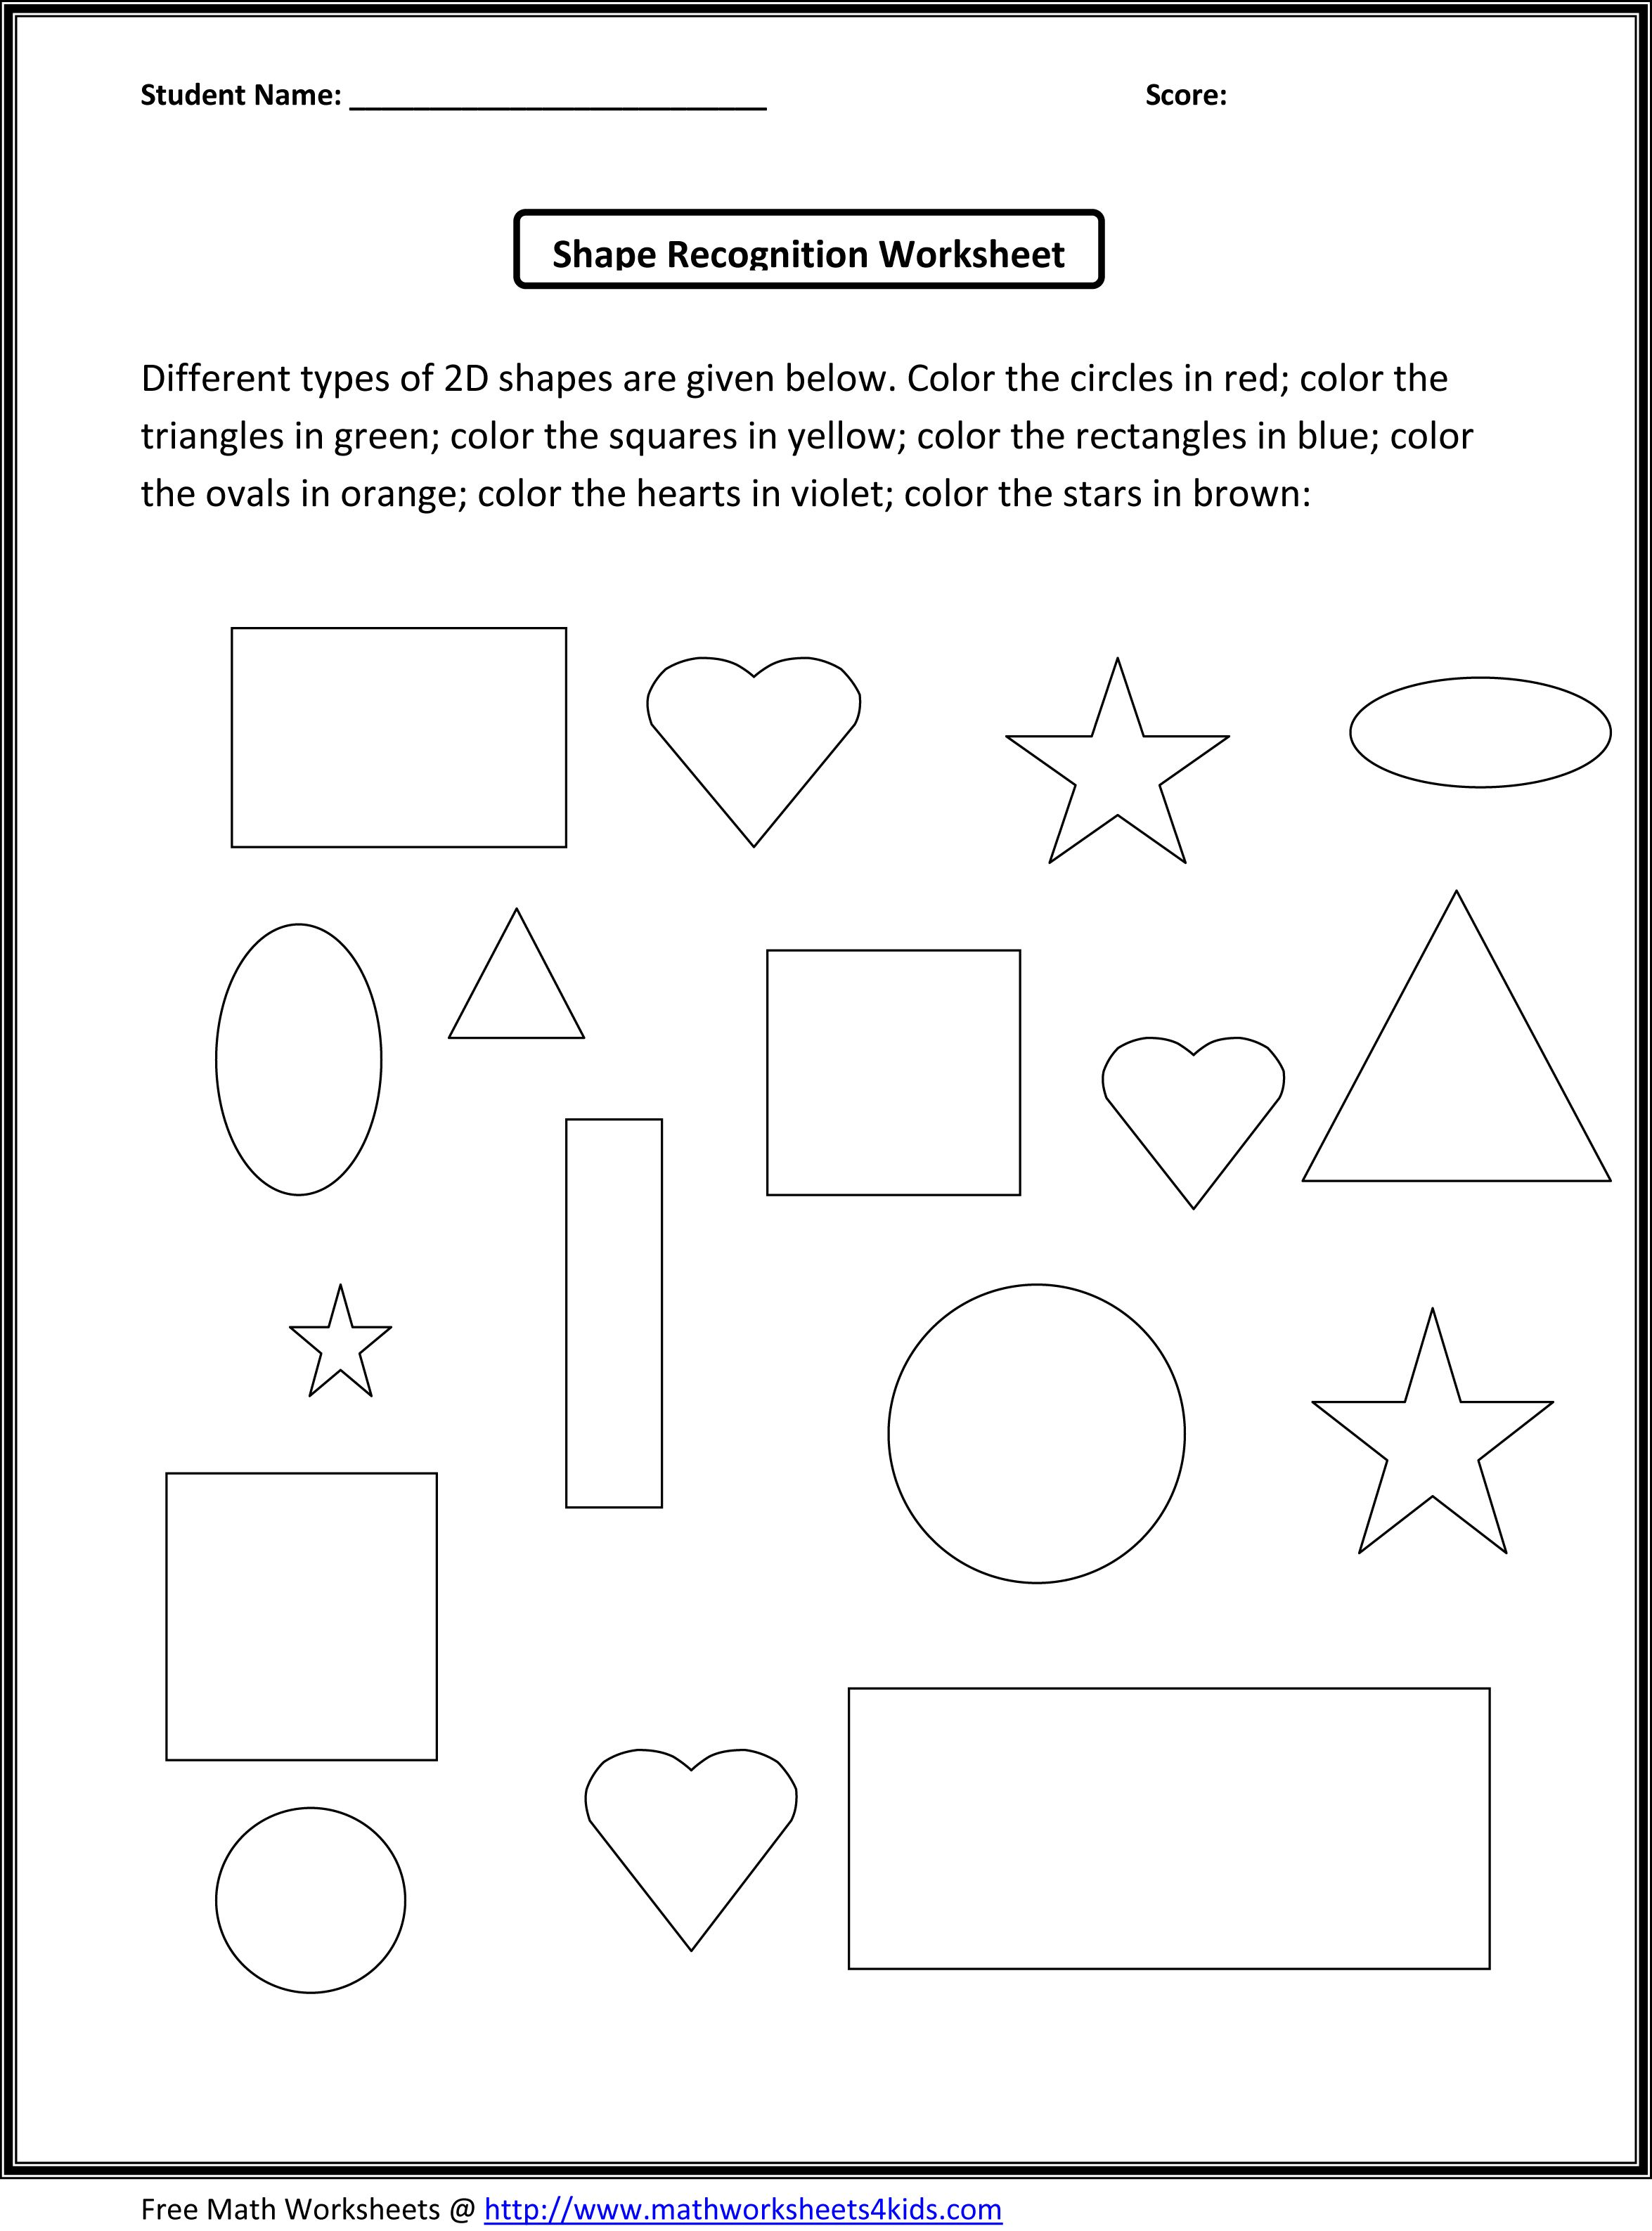 spanish worksheets for kindergarten – Spanish Math Worksheets